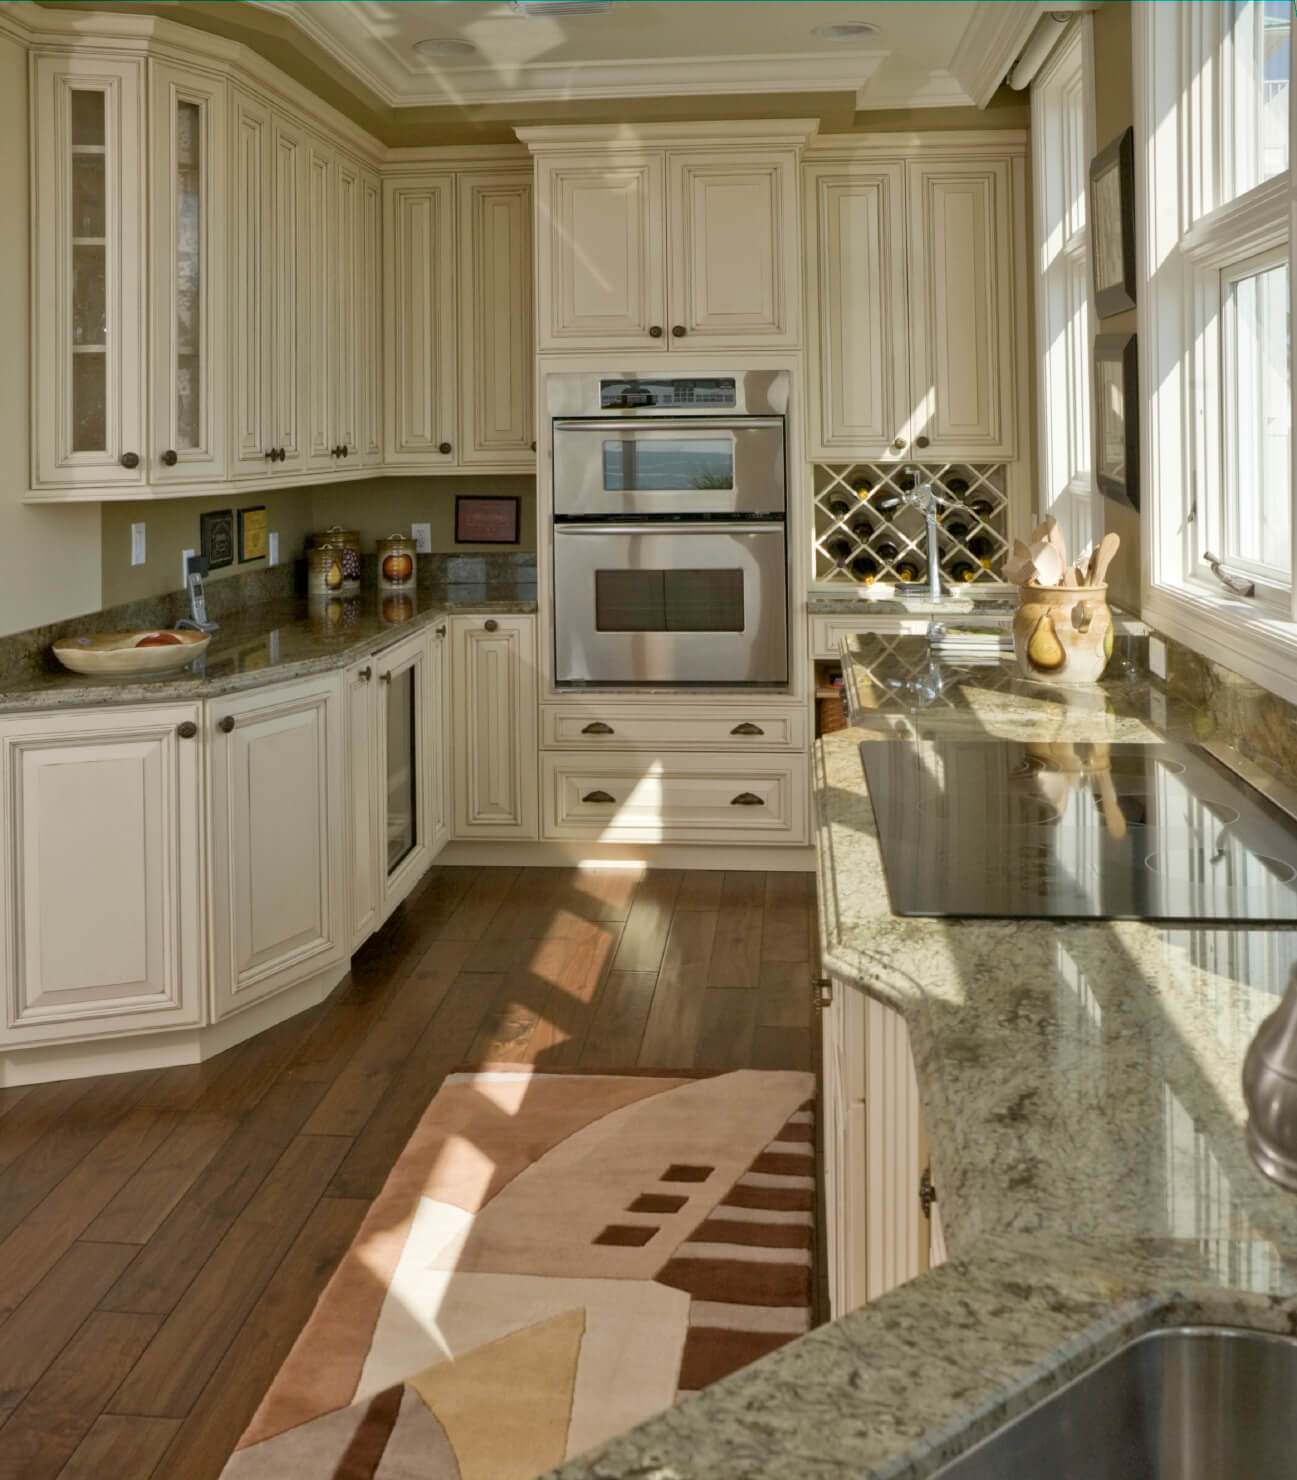 white kitchen designs pictures kitchen countertop tile Treated white cabinets add to the old fashioned look in this compact kitchen featuring geometric rug